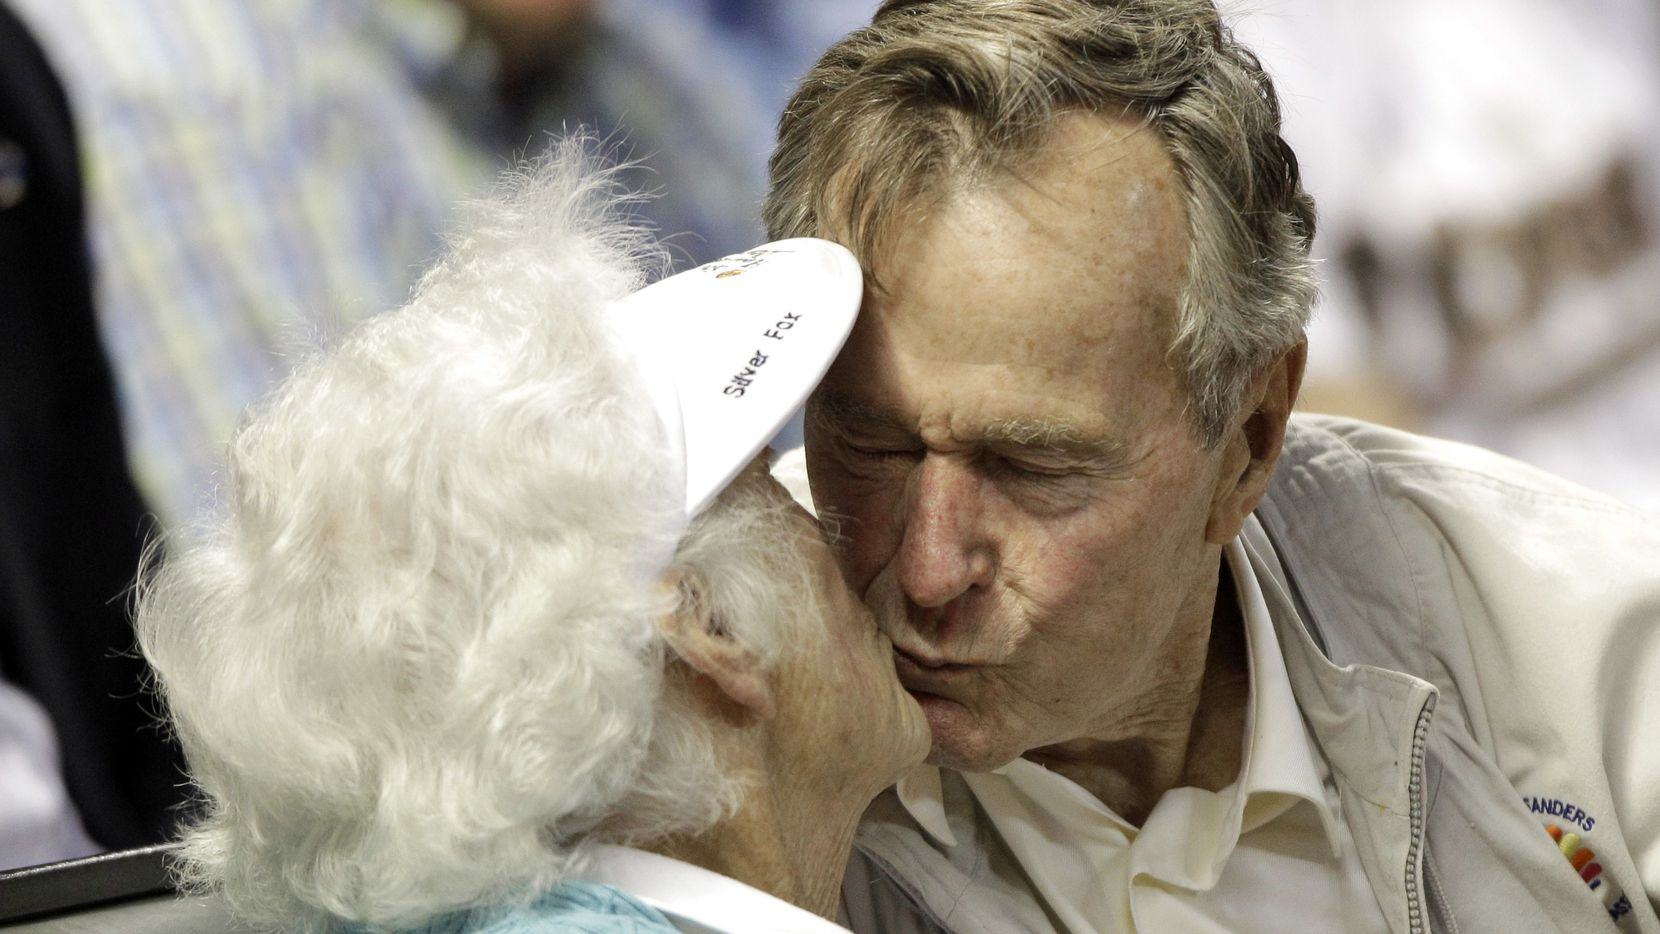 """FILE - In this May 5, 2010 file photo, former U.S. President George H.W. Bush, right, kisses his wife, Barbara, after both were shown on the stadium kiss cam video board during the sixth inning of a baseball game against the Arizona Diamondbacks in Houston. Former first couple George and Barbara Bush's relationship is a true love story, described by granddaughter Jenna Bush Hager as """"remarkable."""" They met at a Christmas dance. She was 17. He was 18. Two years later they were married. Now 73 years later, with Barbara Bush declining further medical care for health problems, they are the longest-married couple in presidential history. (AP Photo/David J. Phillip, File)"""